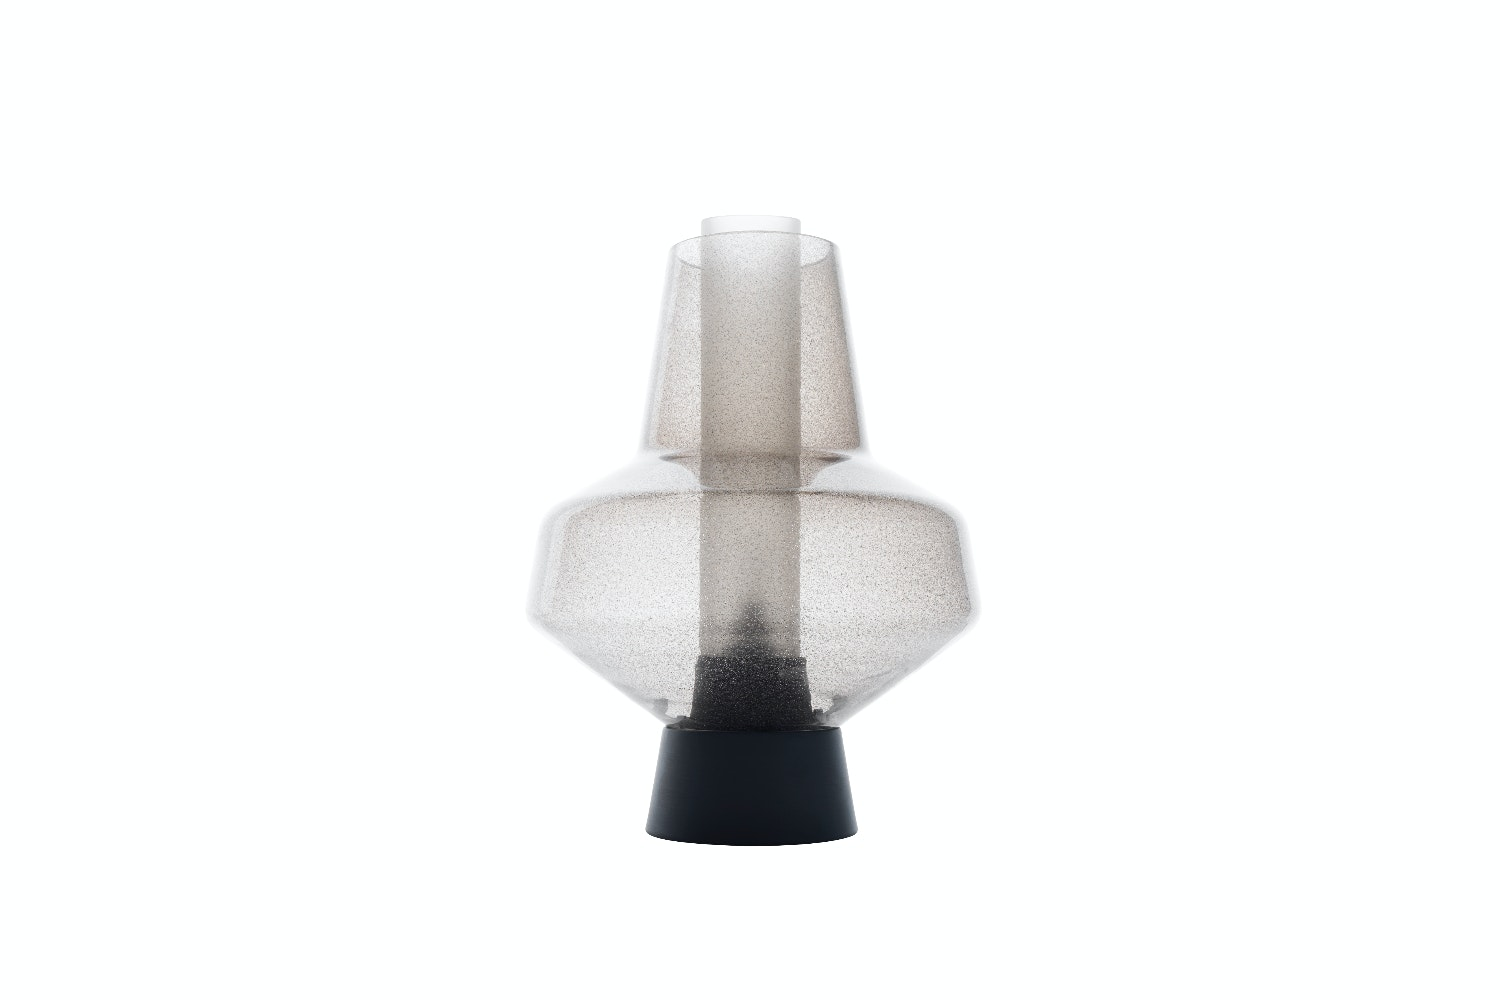 Metal Glass 2 Table Lamp by Successful Living from DIESEL for Foscarini